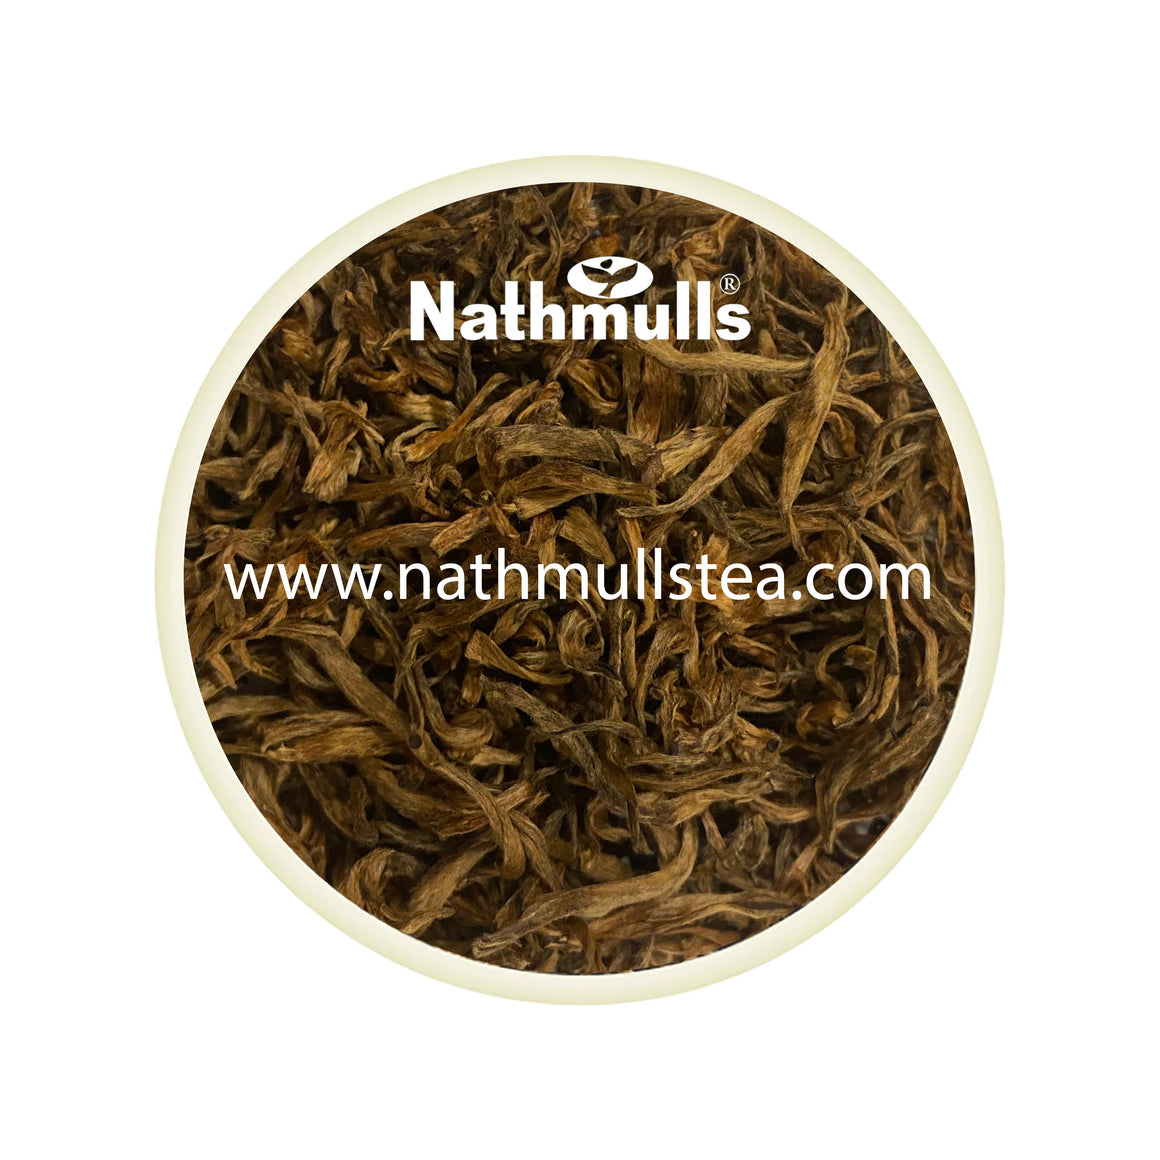 Golden Buds Borpatra Assam Black Tea - Second Flush -2020